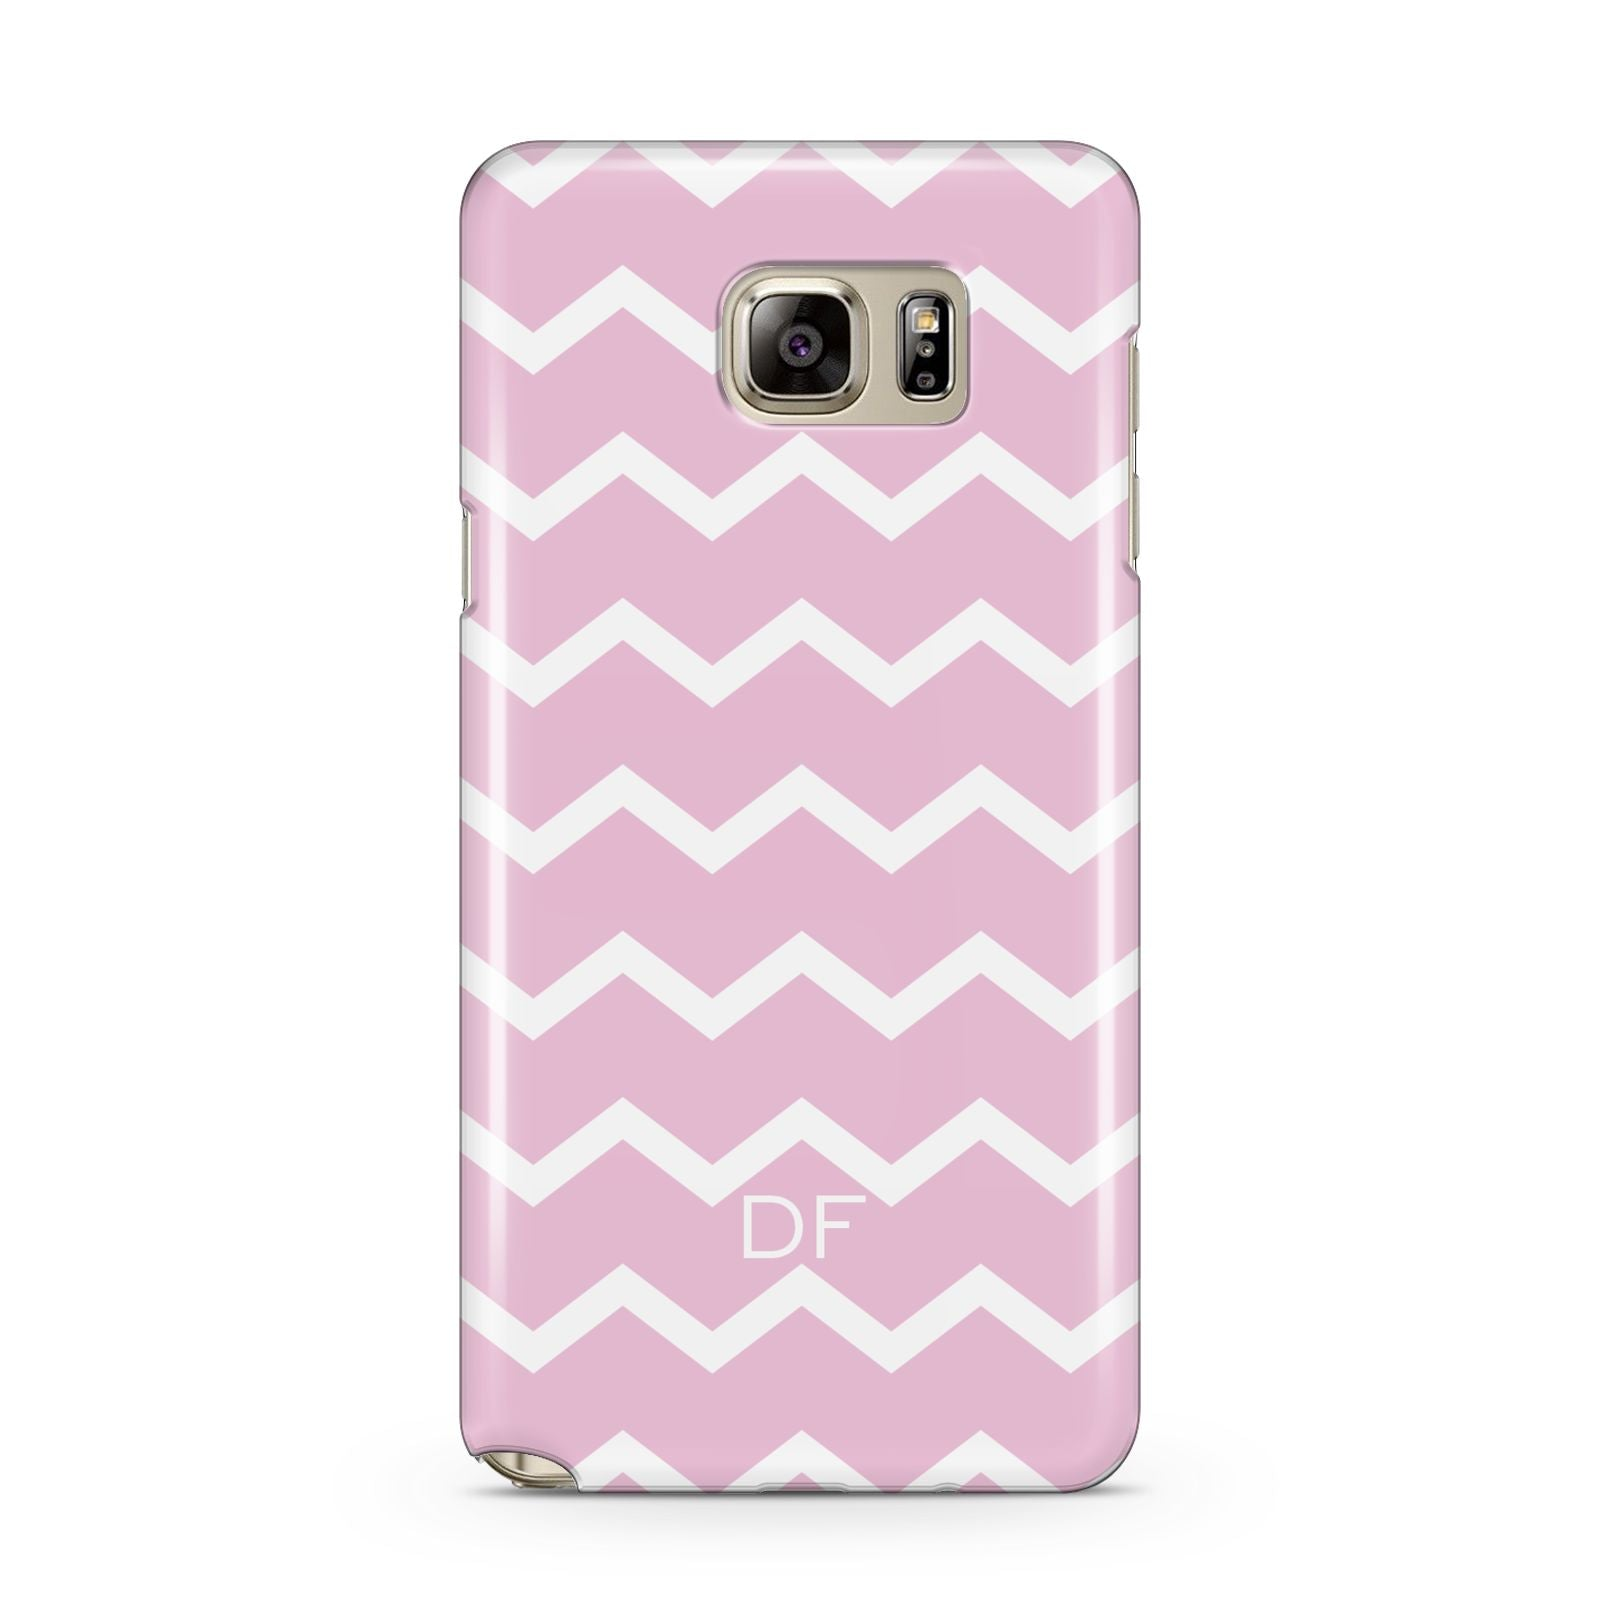 Personalised Chevron Pink Samsung Galaxy Note 5 Case